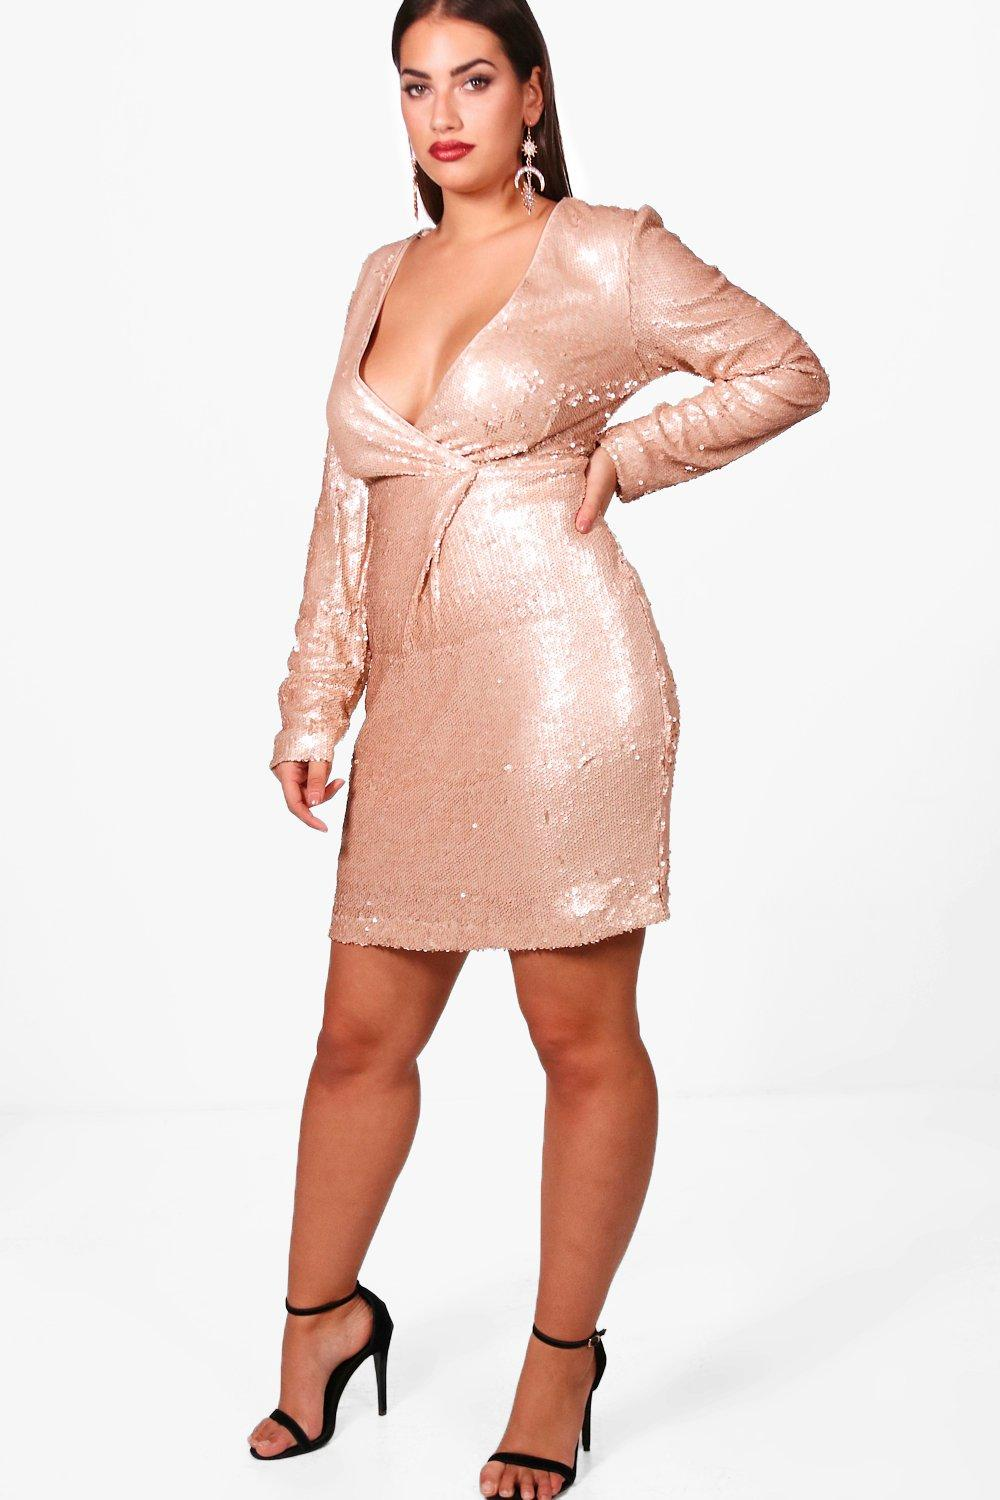 Boohoo Curvy Fashion